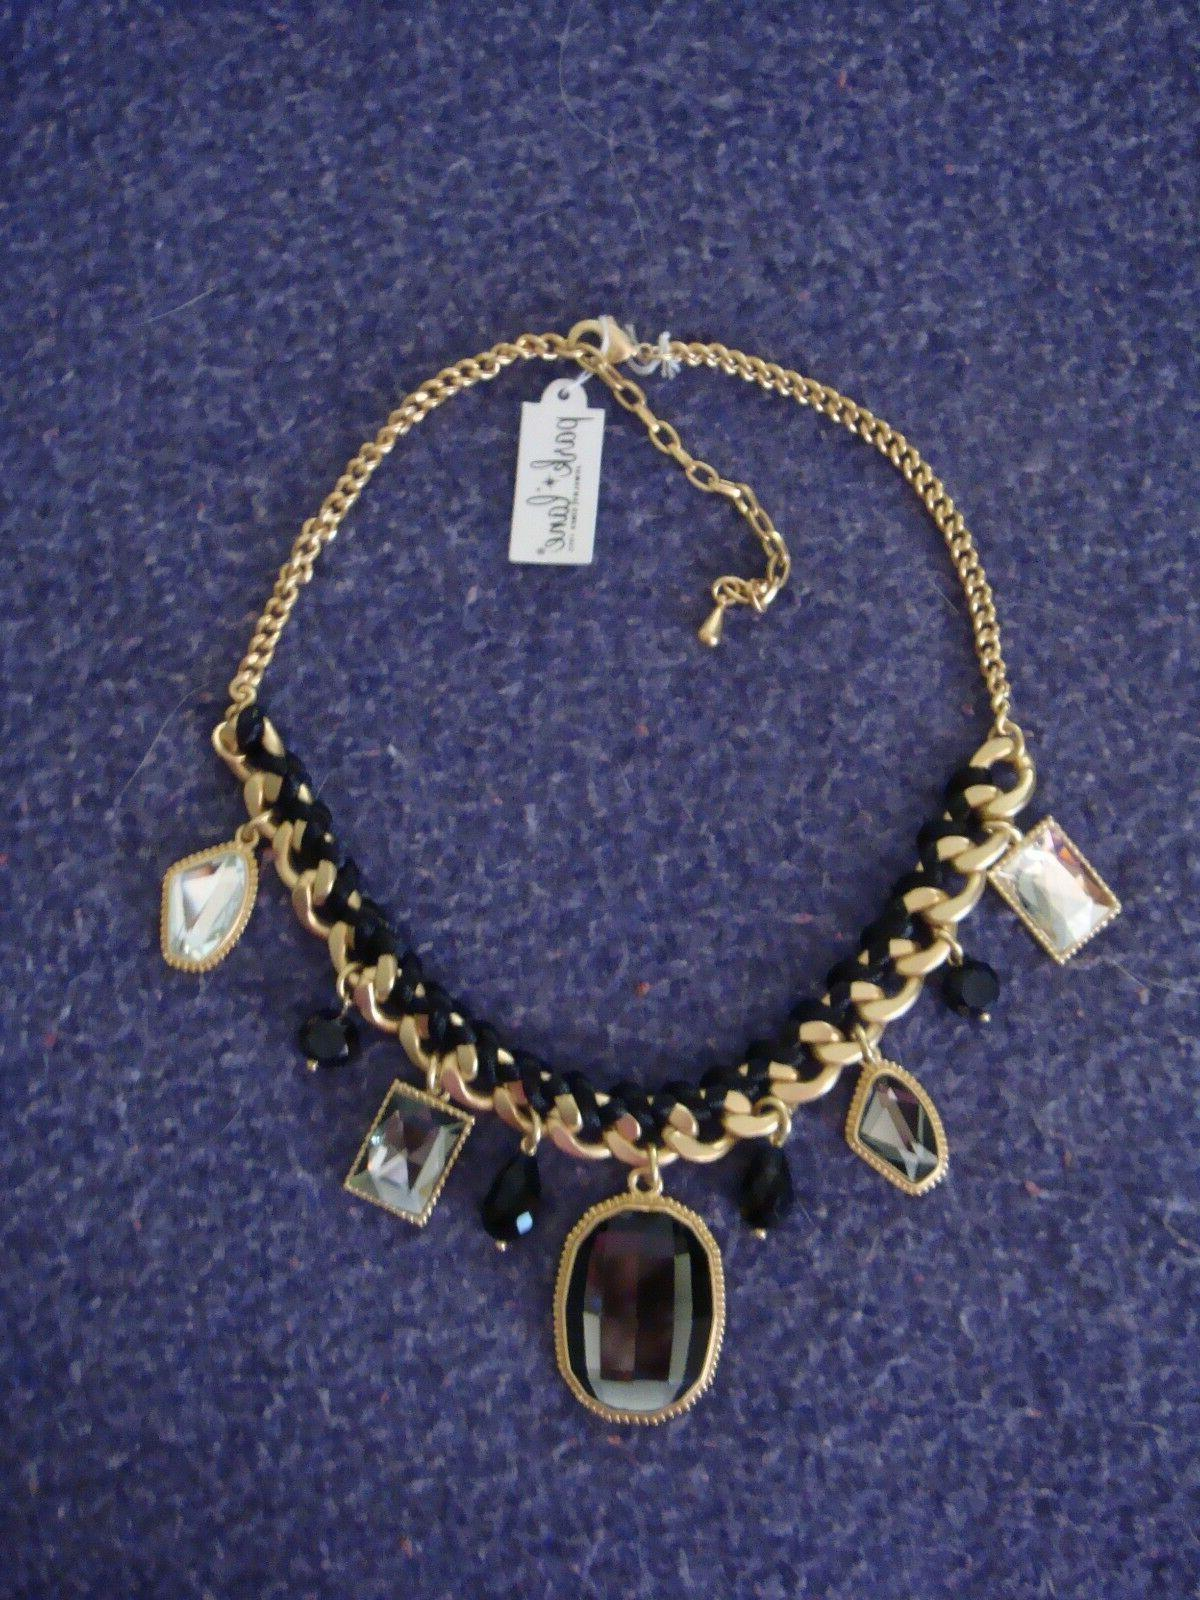 nib fascinated gold and black mirrored 110